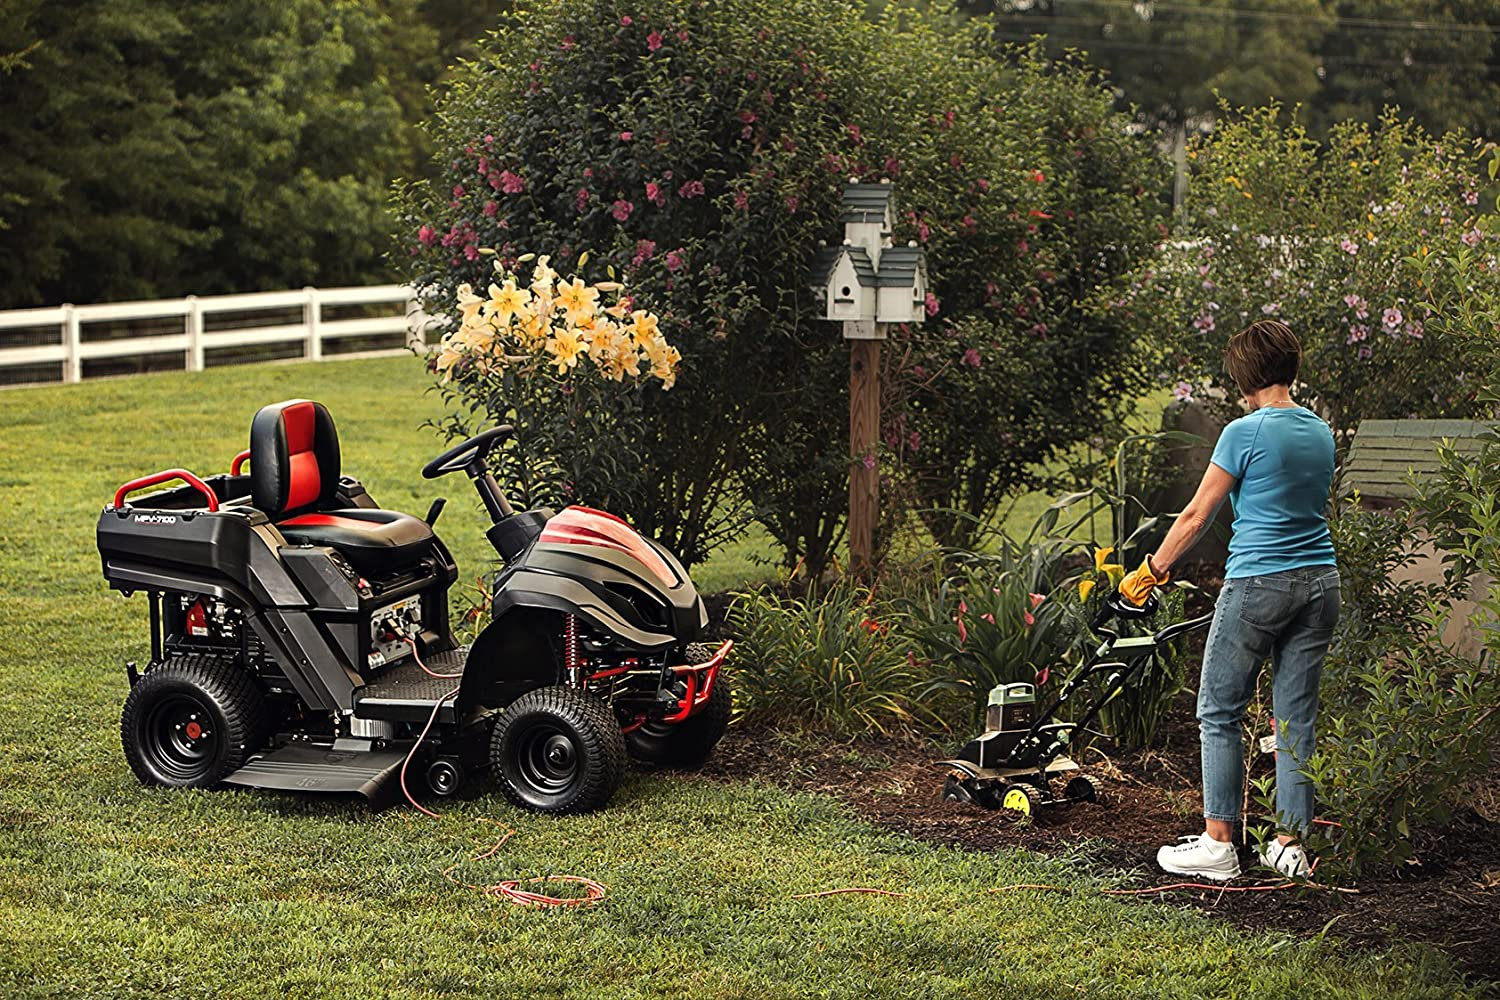 Amazon.com : Raven MPV7100 Hybrid Riding Lawnmower Power Generator ...